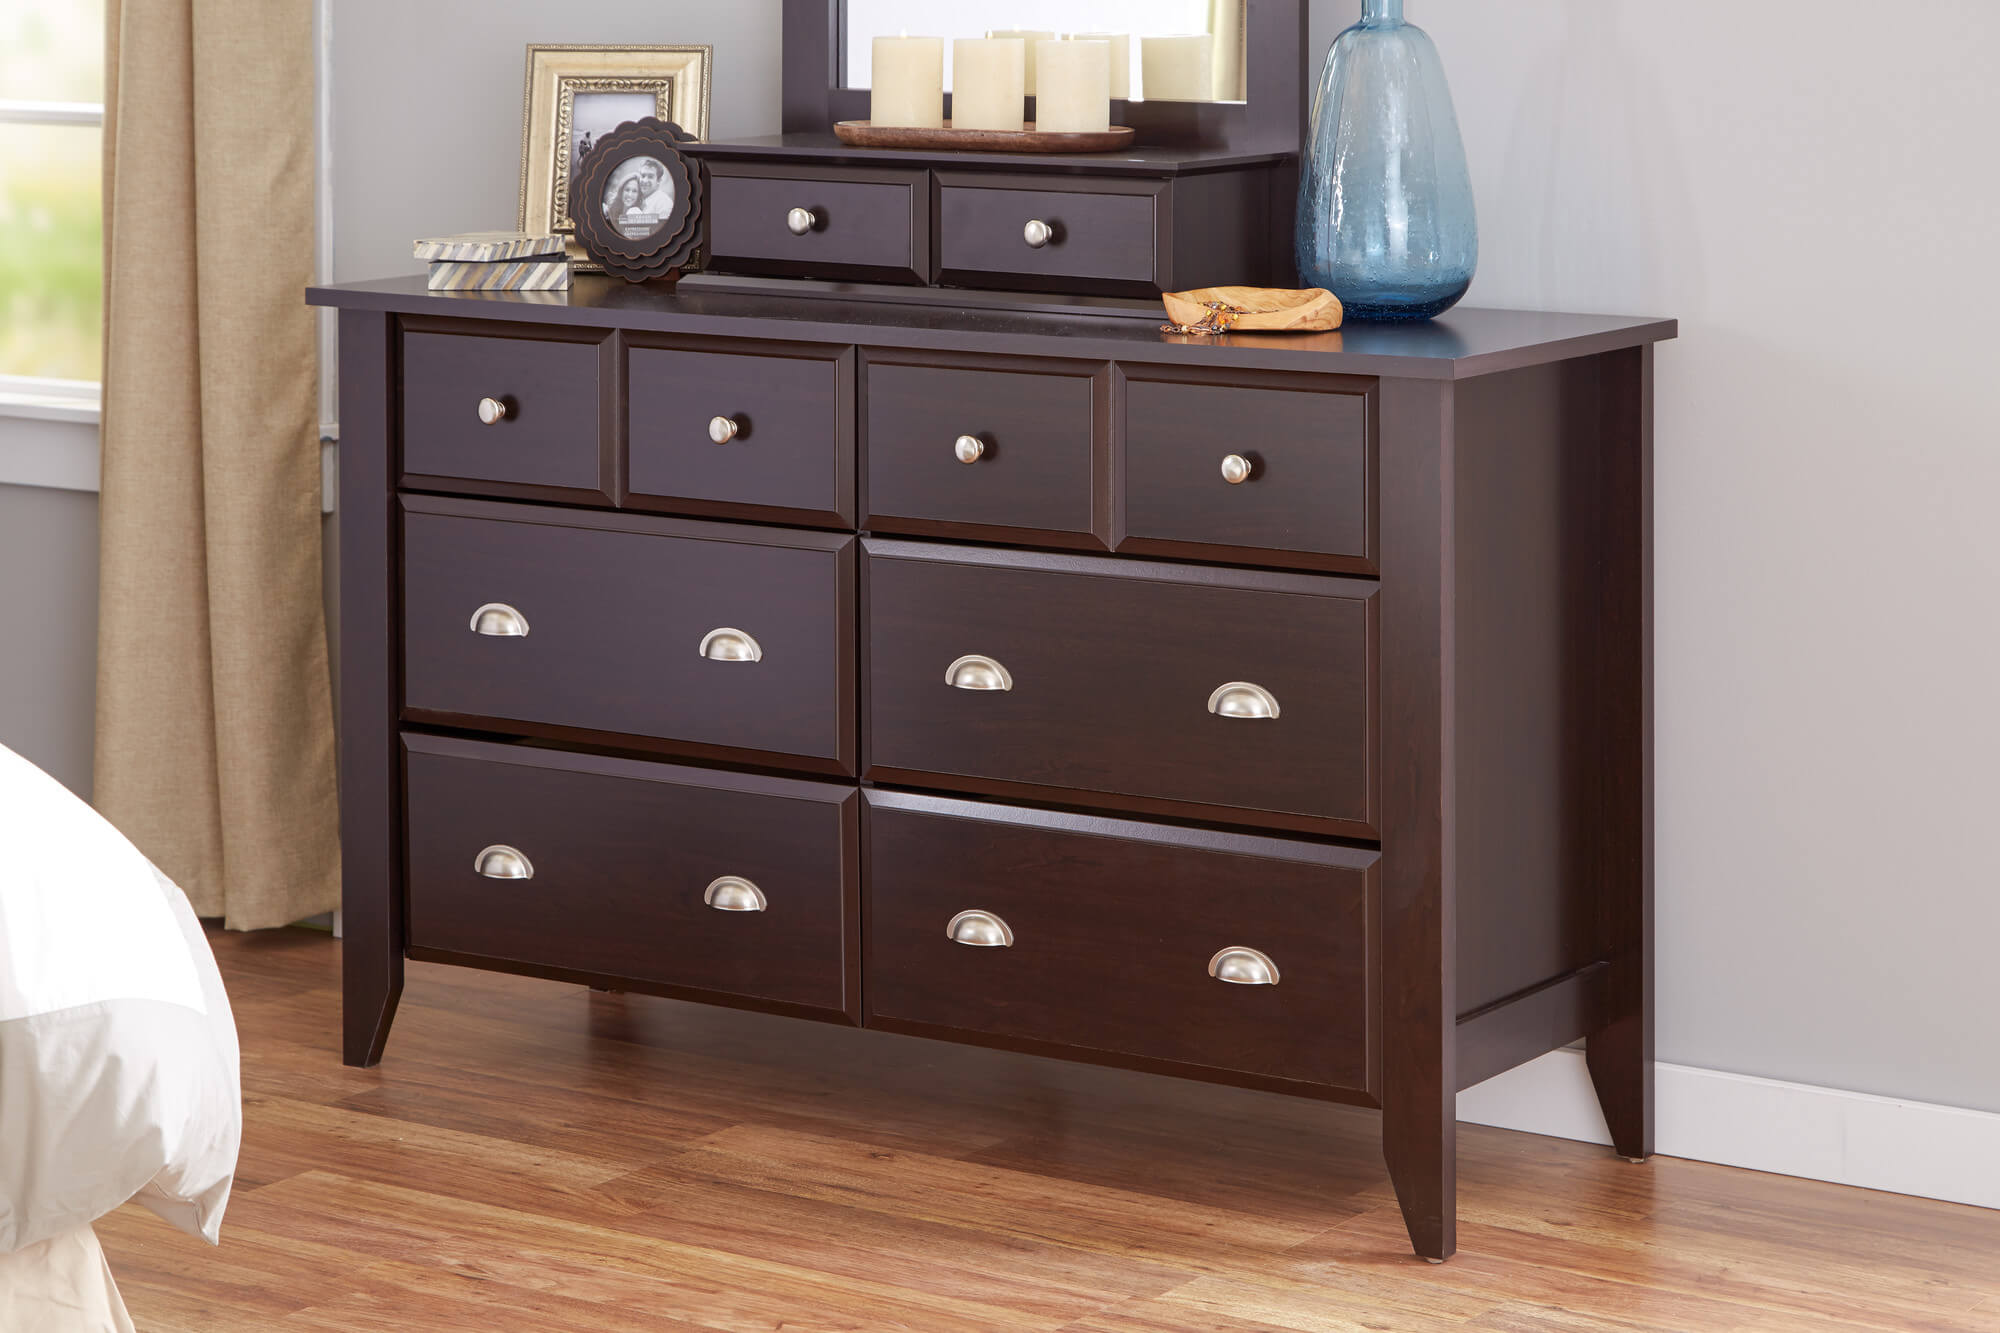 The standard dresser design came from one of the oldest pieces of furniture invented the